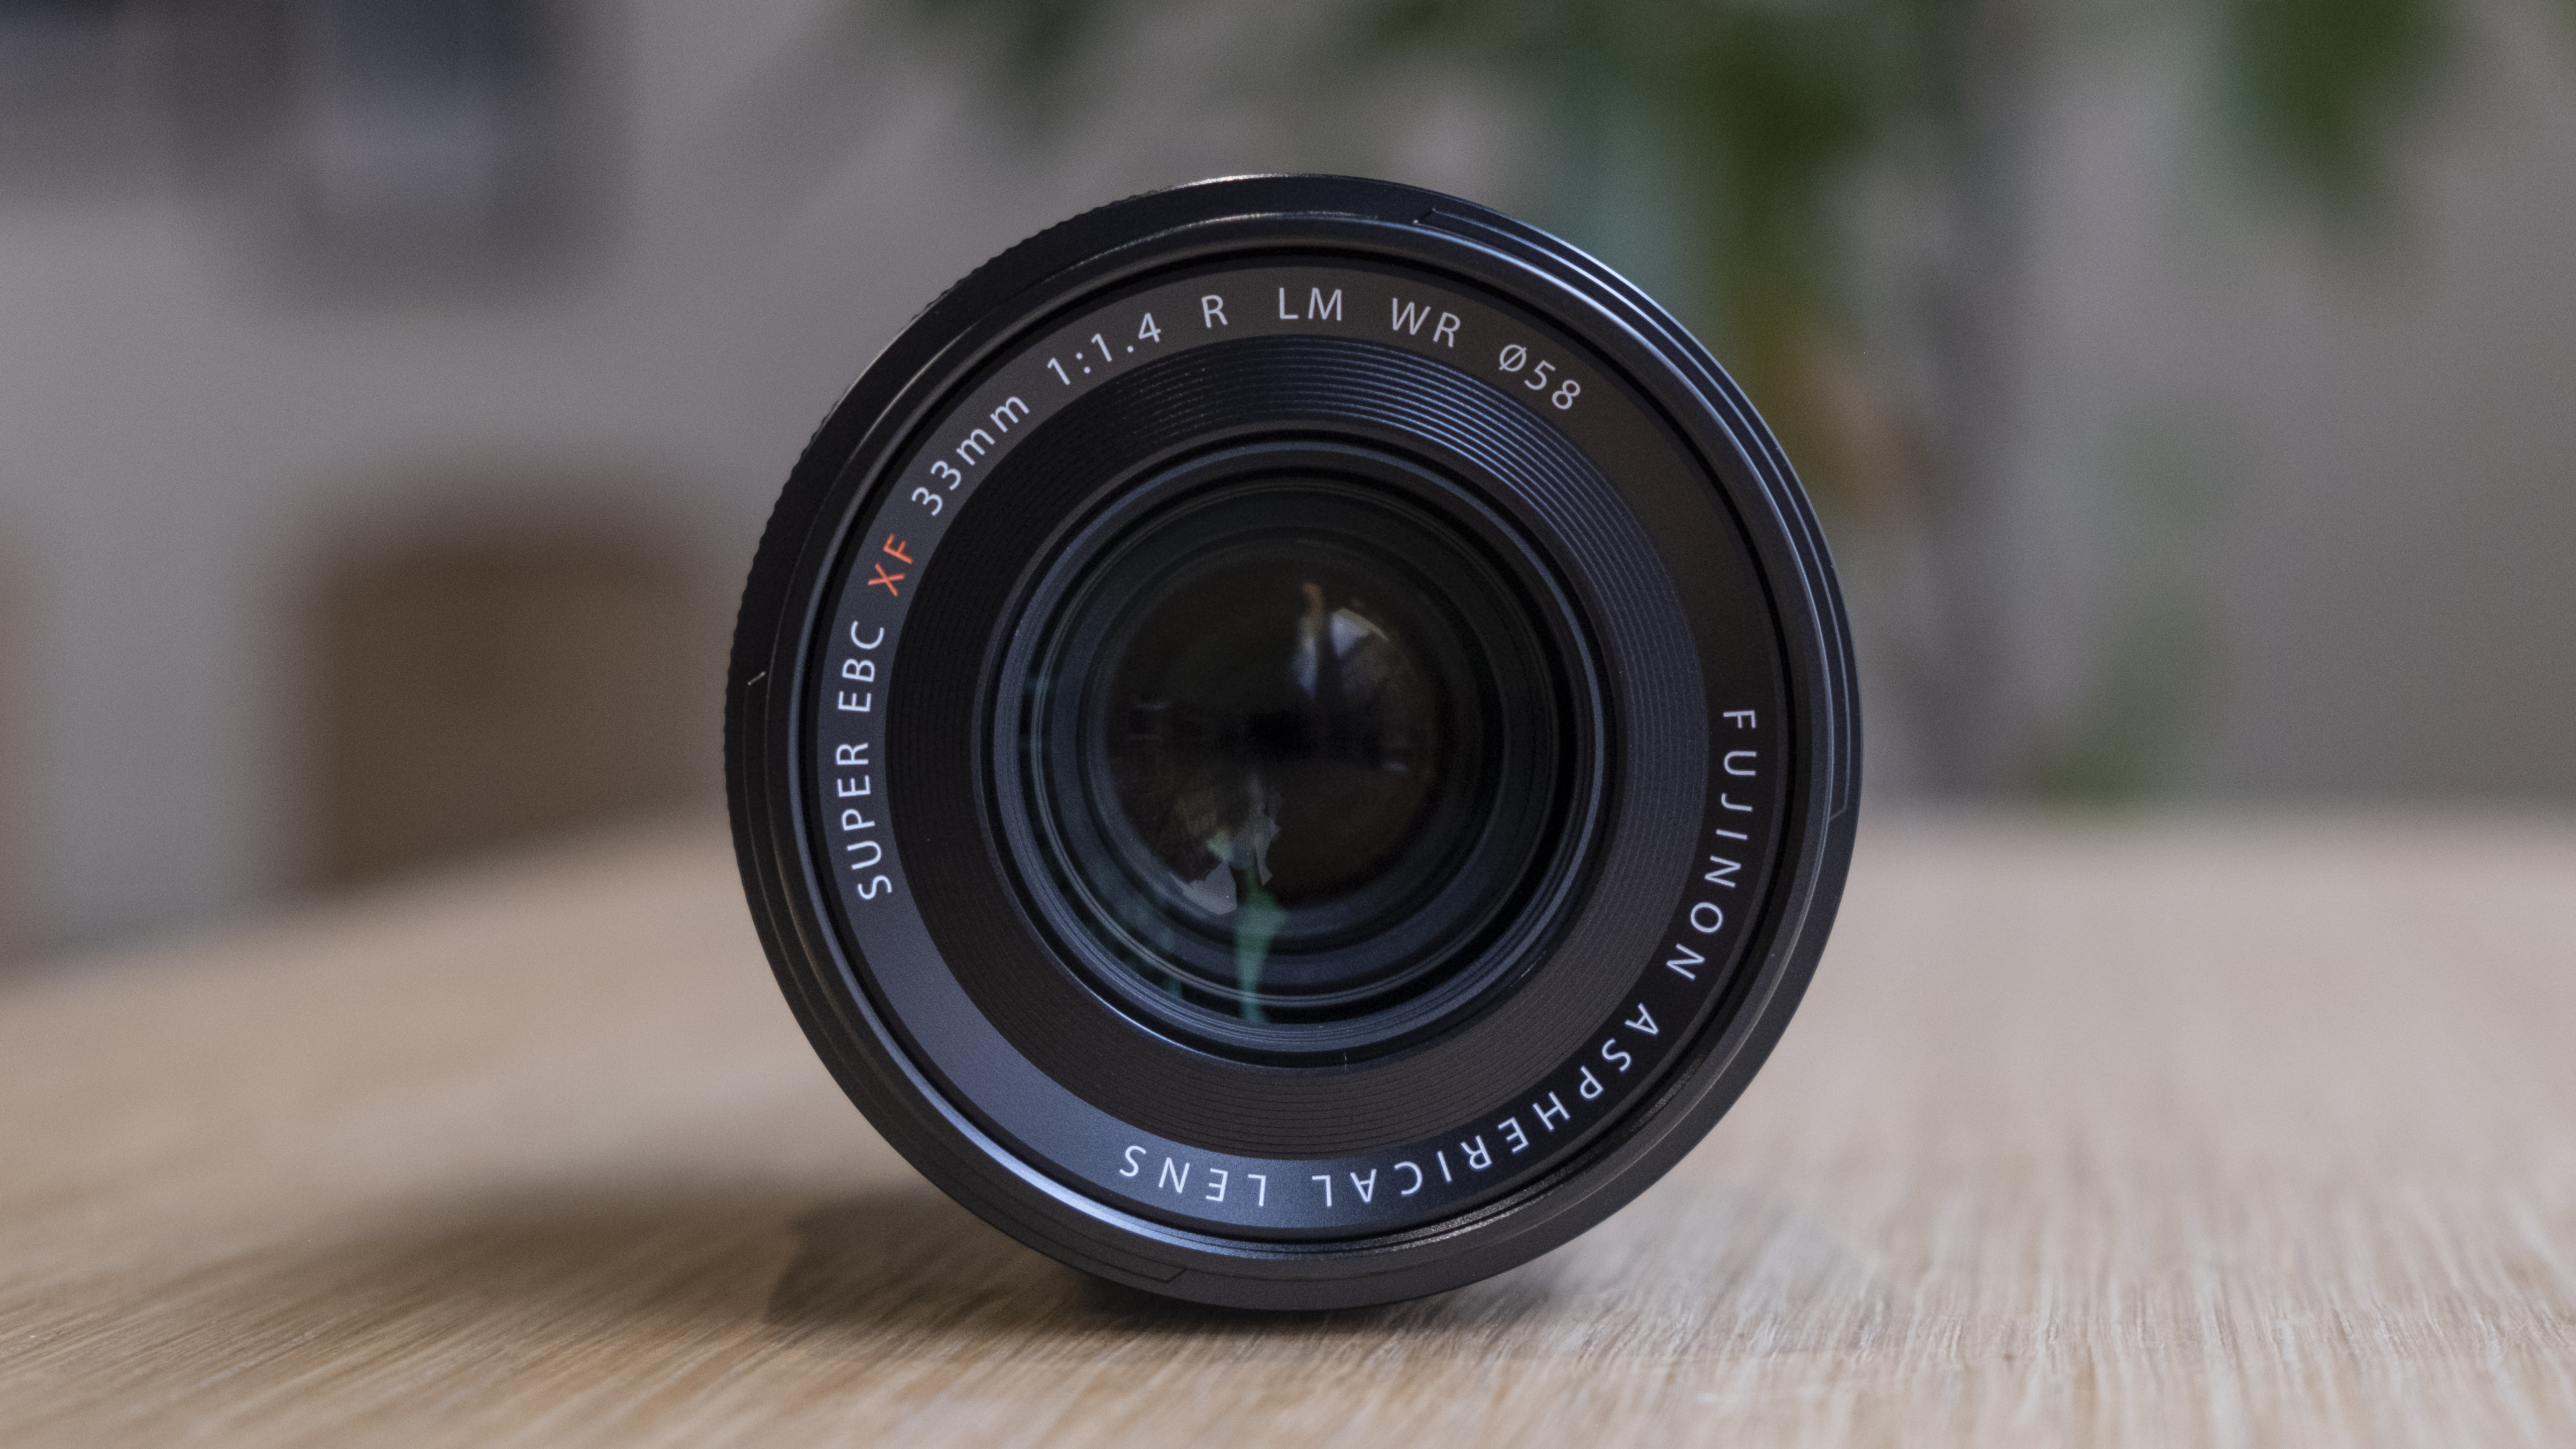 The Fujifilm XF33mm f/1.4 lens on a wooden table